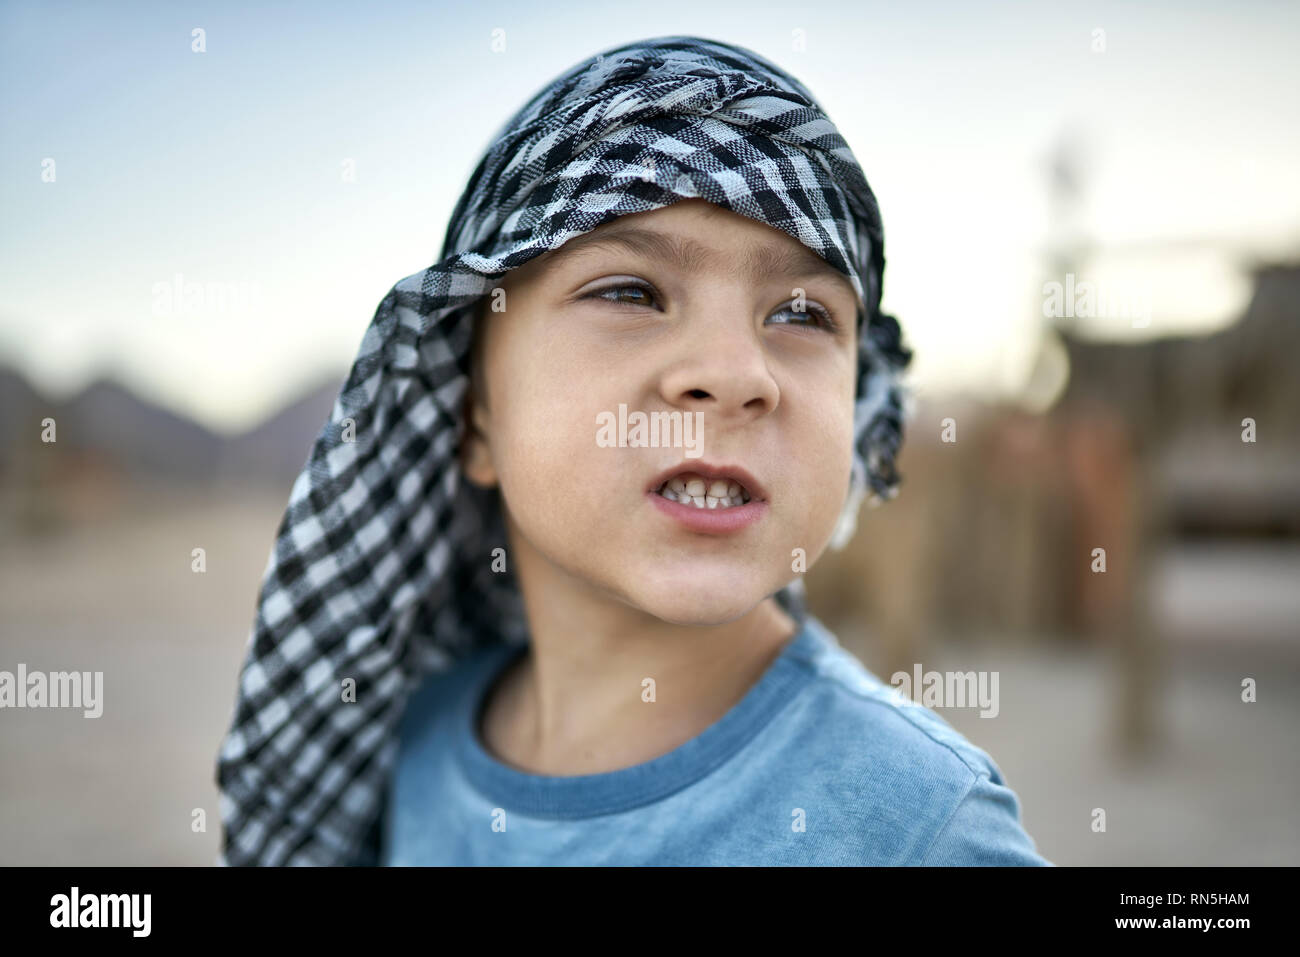 Small boy in checkered keffiyeh grimacing outdoors - Stock Image